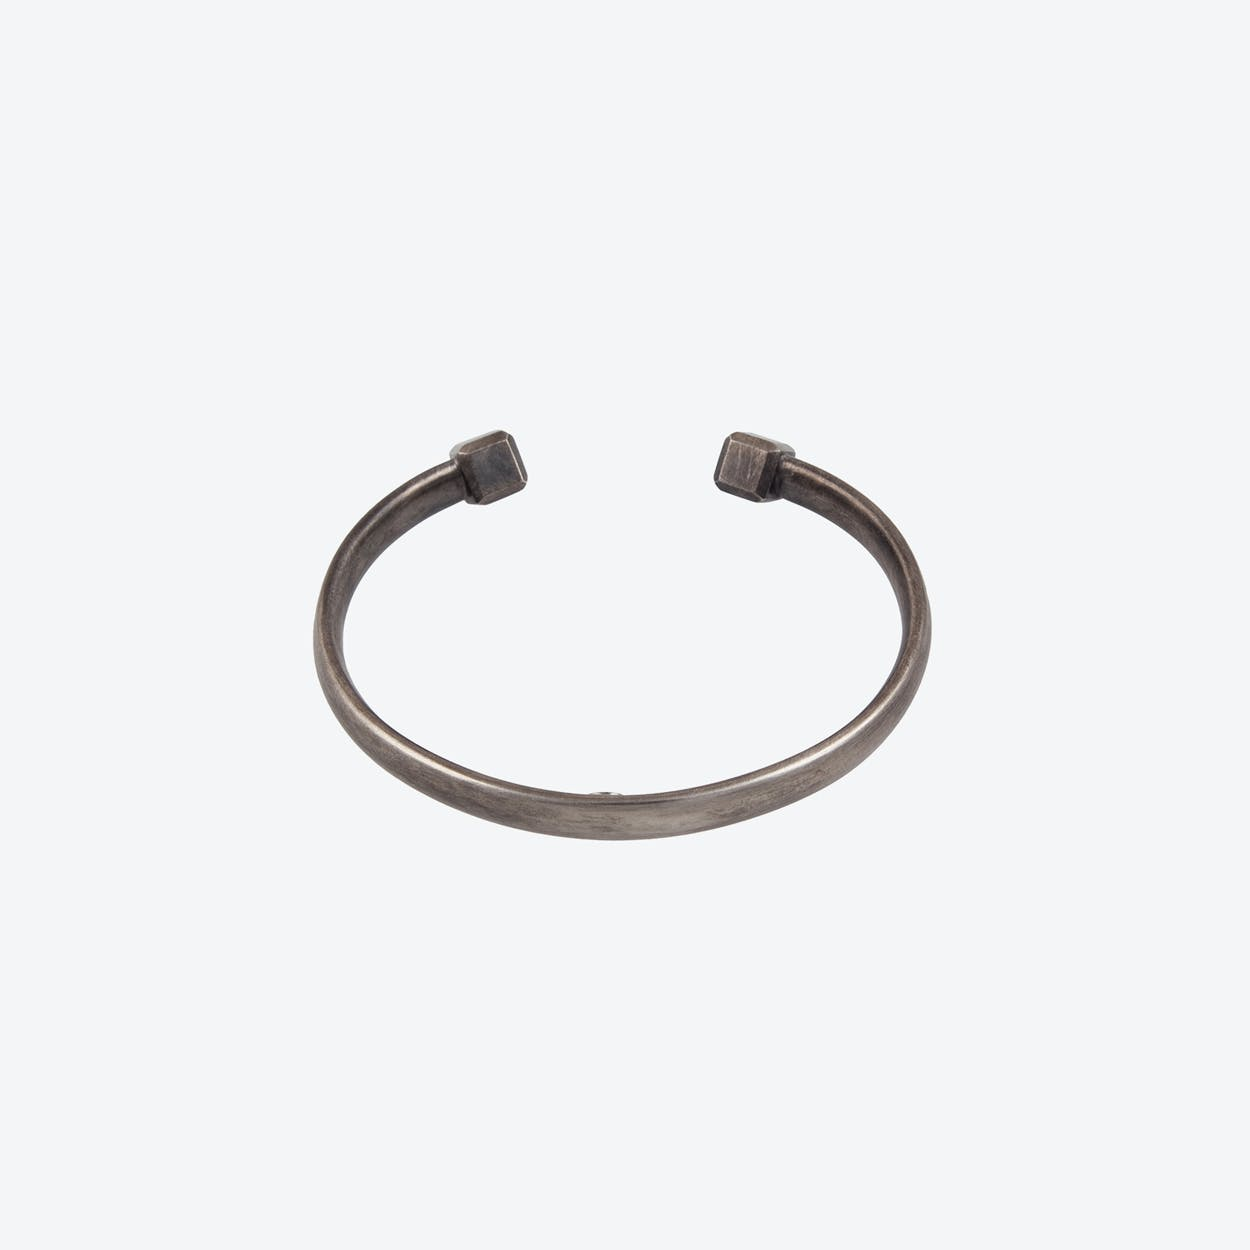 OVAL X Slim Bracelet in Oxidized Sterling Silver